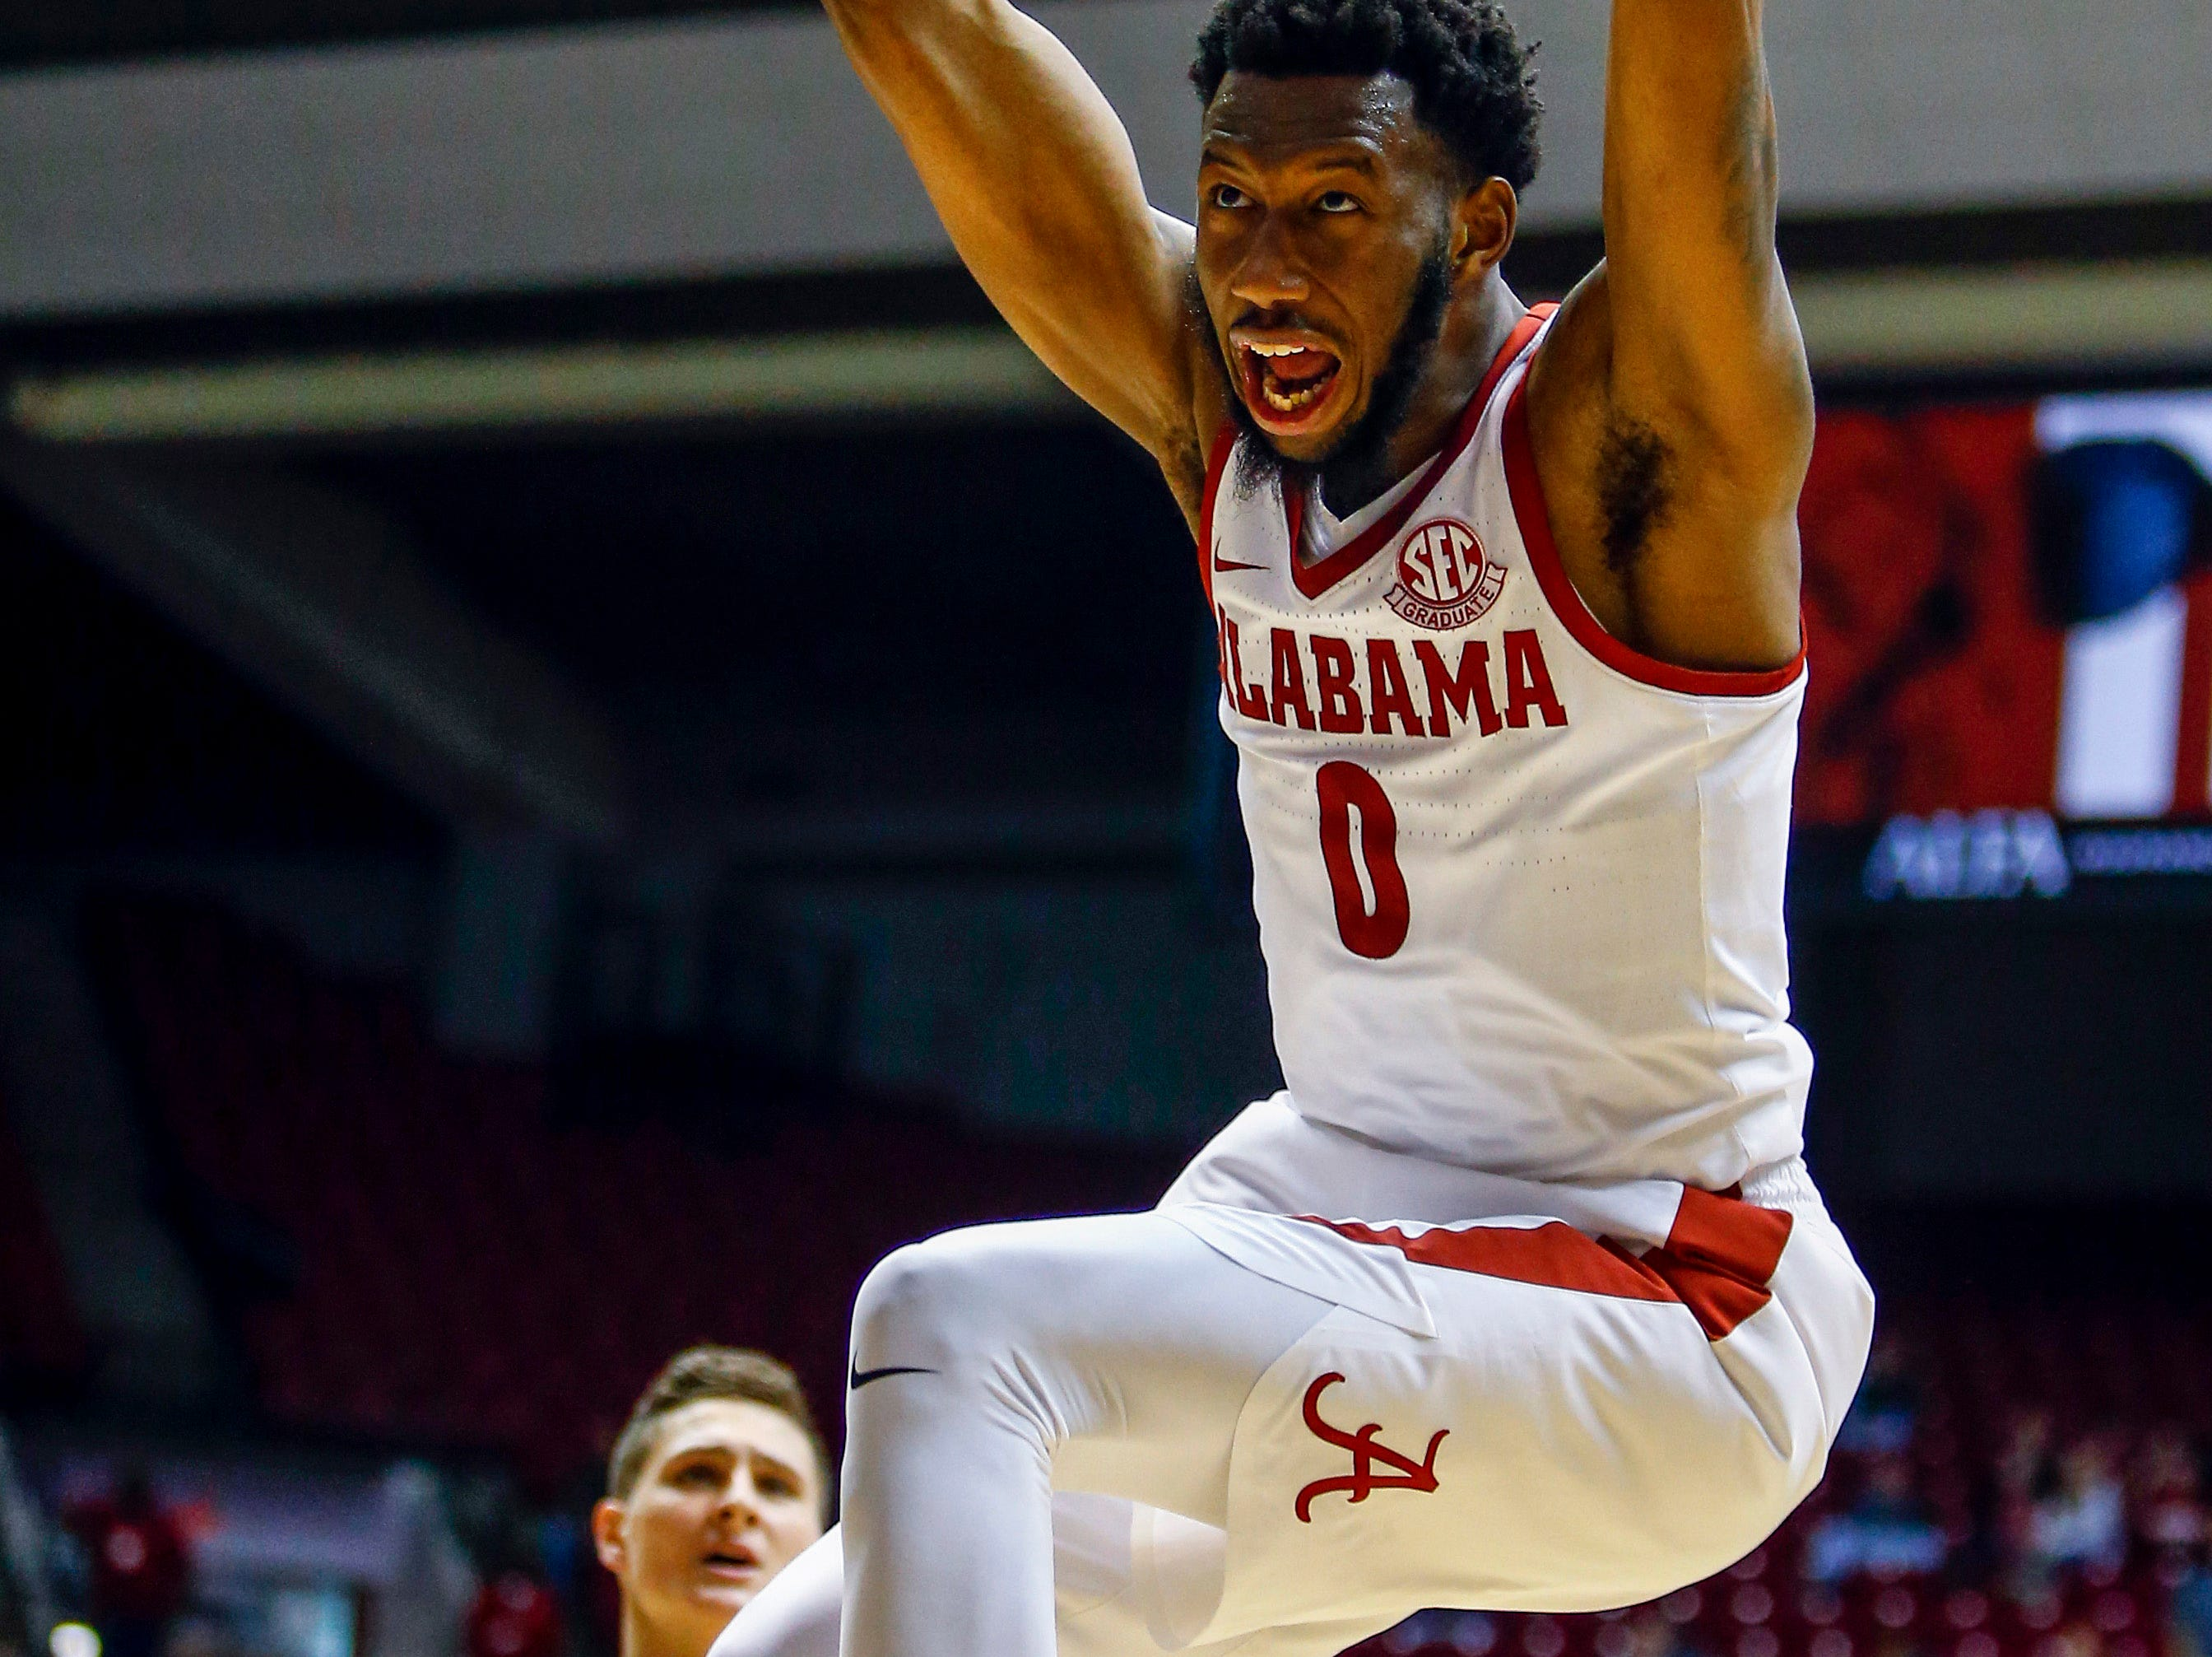 Dec 21, 2018; Tuscaloosa, AL, USA; Alabama Crimson Tide forward Donta Hall (0) dunks the ball during the second half of an NCAA college basketball game against the Penn State Nittany Lions at Coleman Coliseum. Mandatory Credit: Butch Dill-USA TODAY Sports